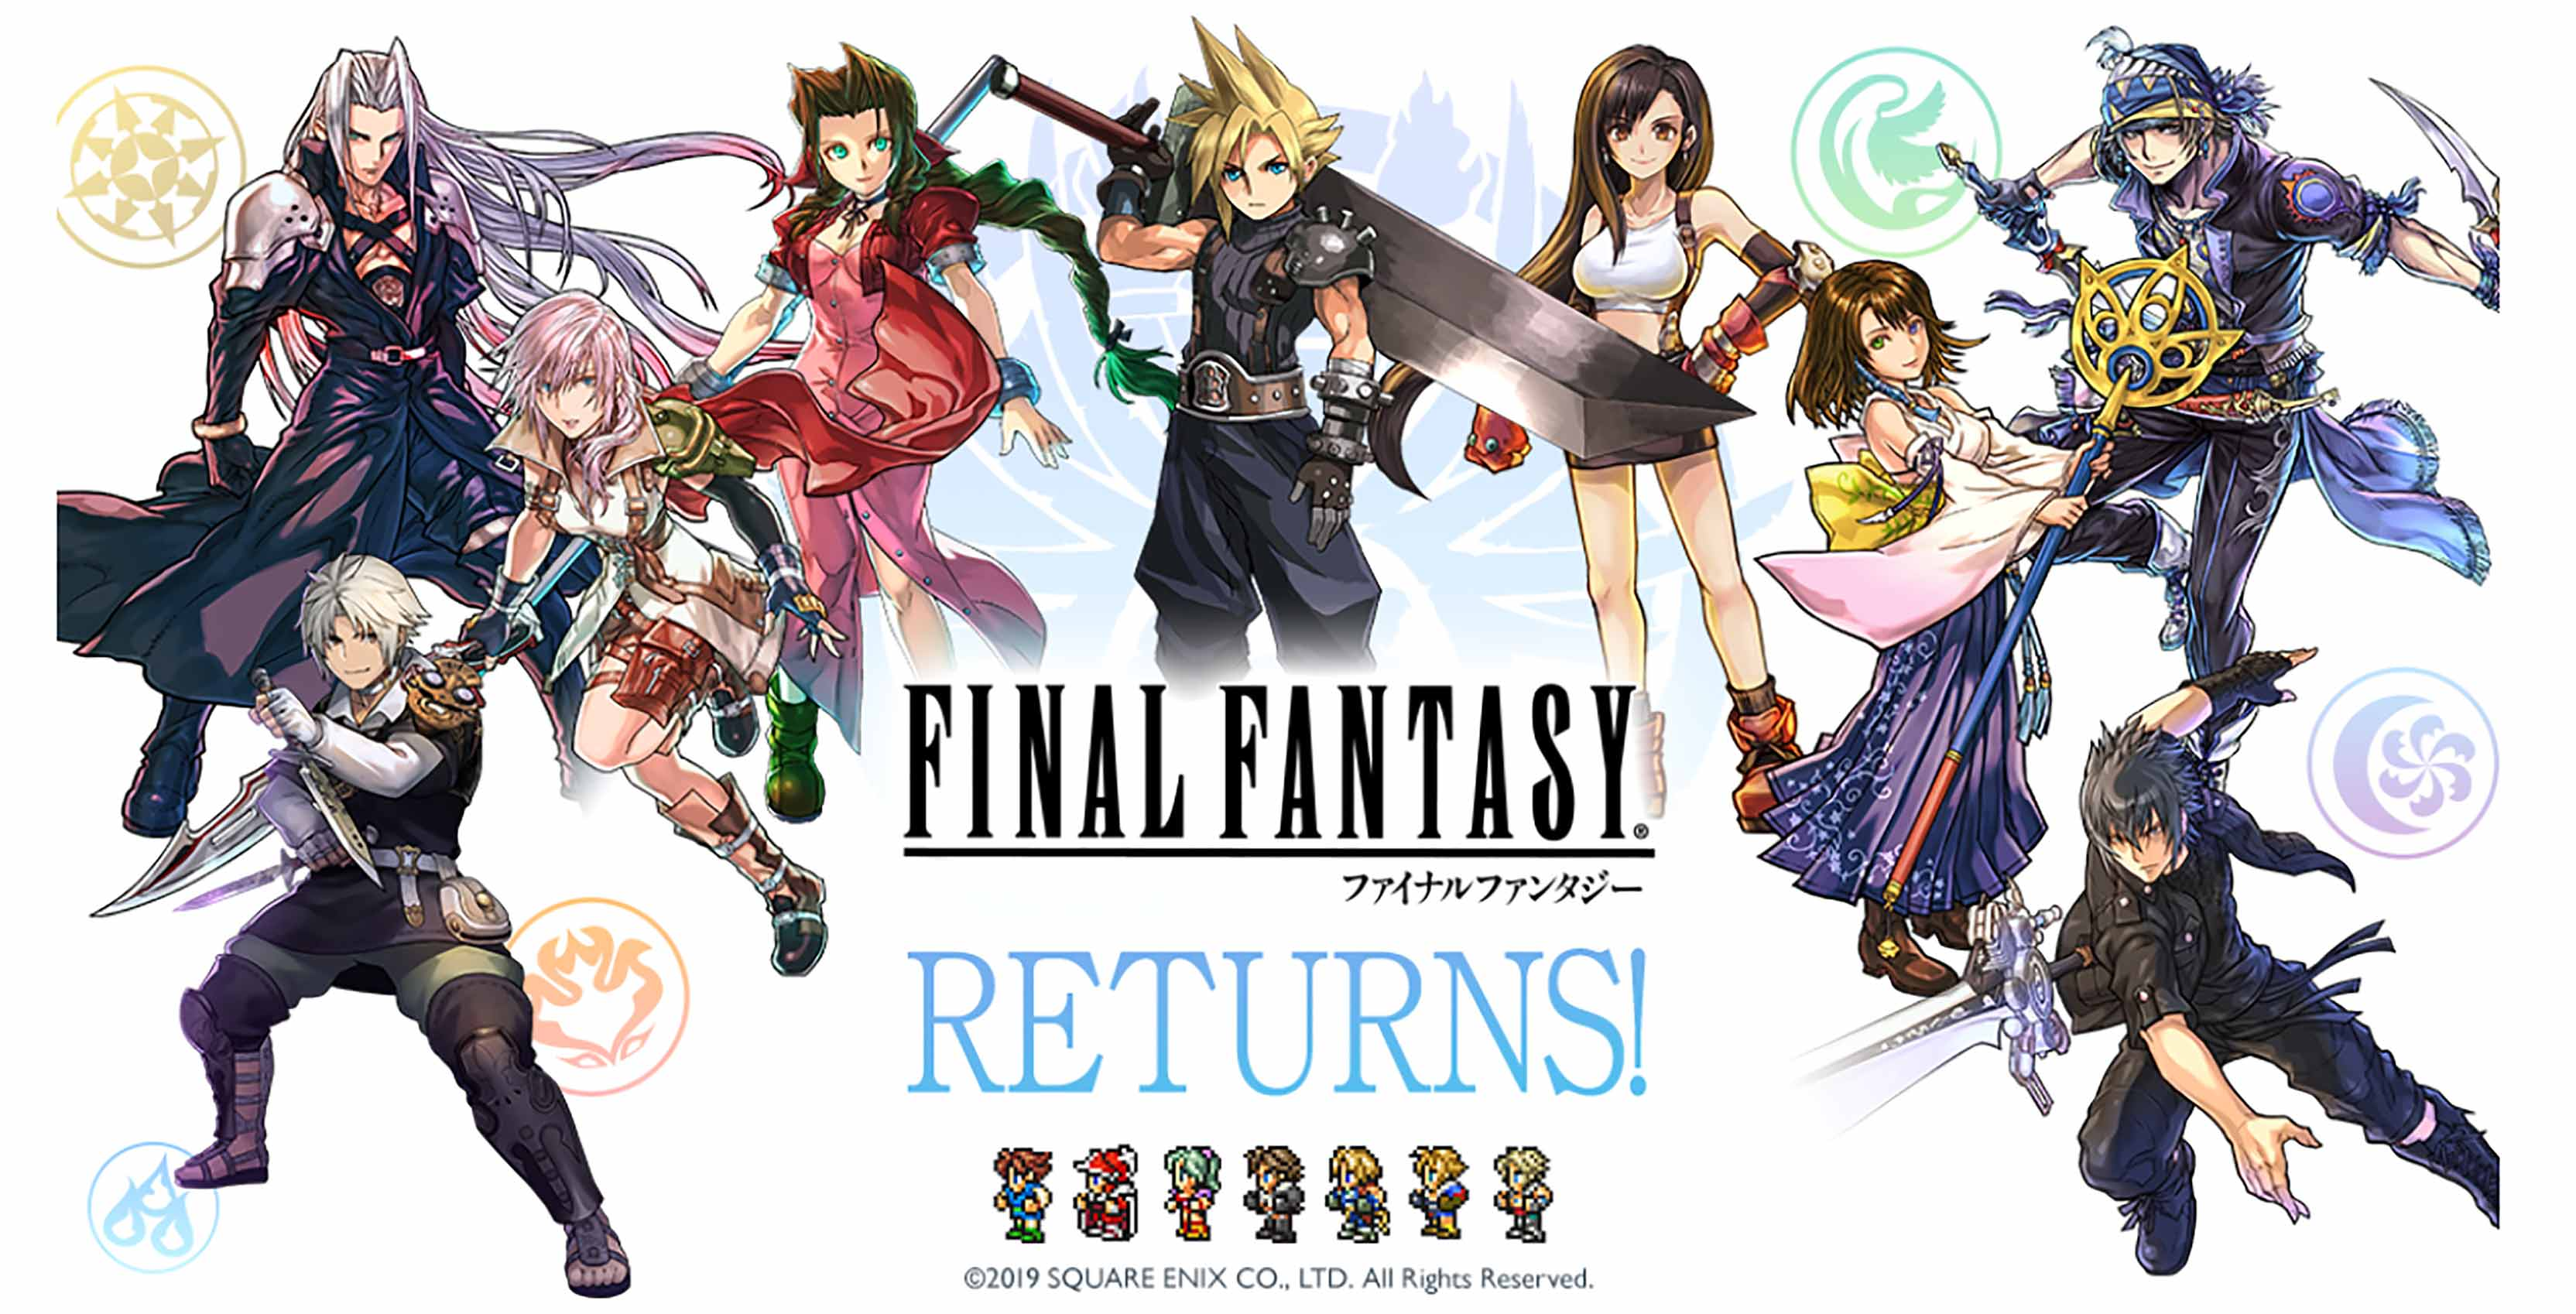 Final Fantasy characters return to Puzzles & Dragons mobile game